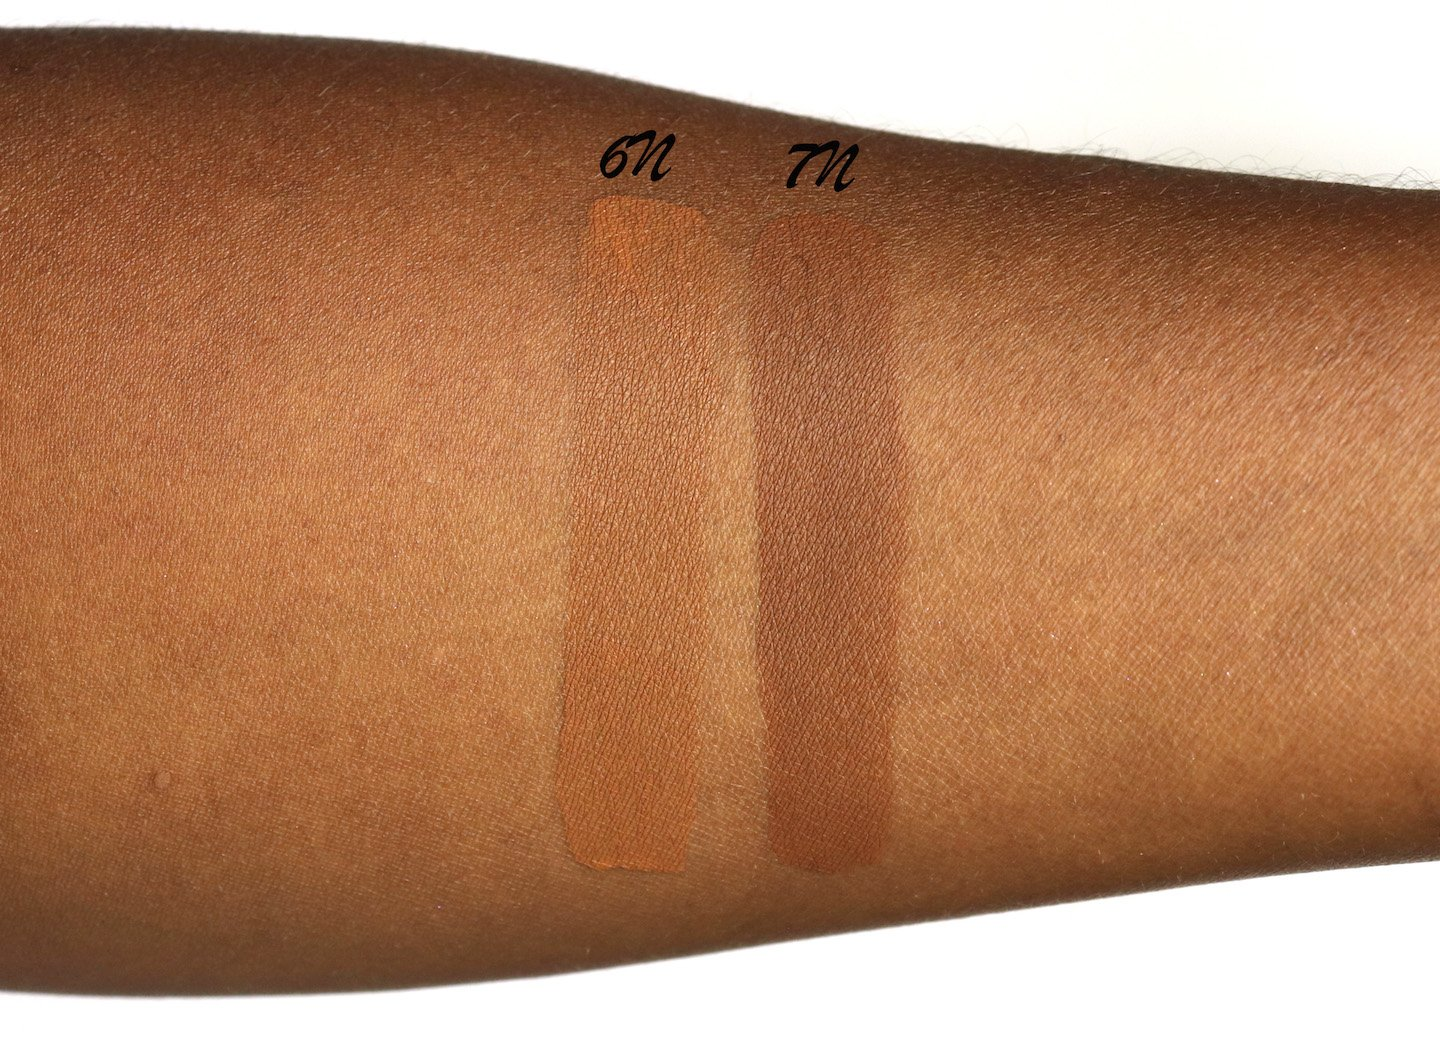 Dior Backstage Face Body Foundation 6n 7n Swatches Review